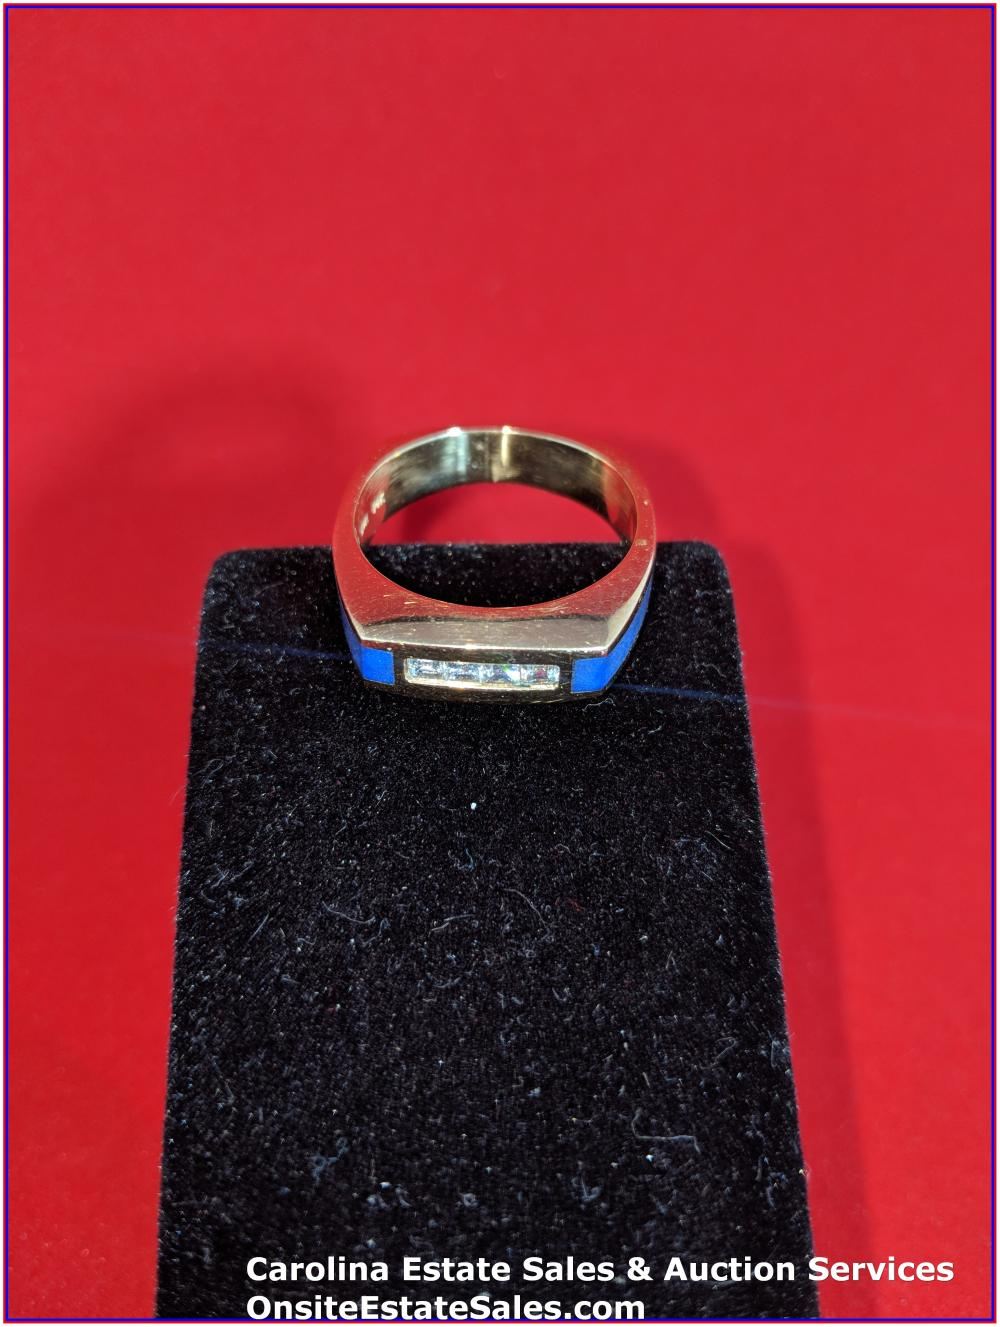 14K Gem Ring Gold 10 Grams Total Weight Includes Stone